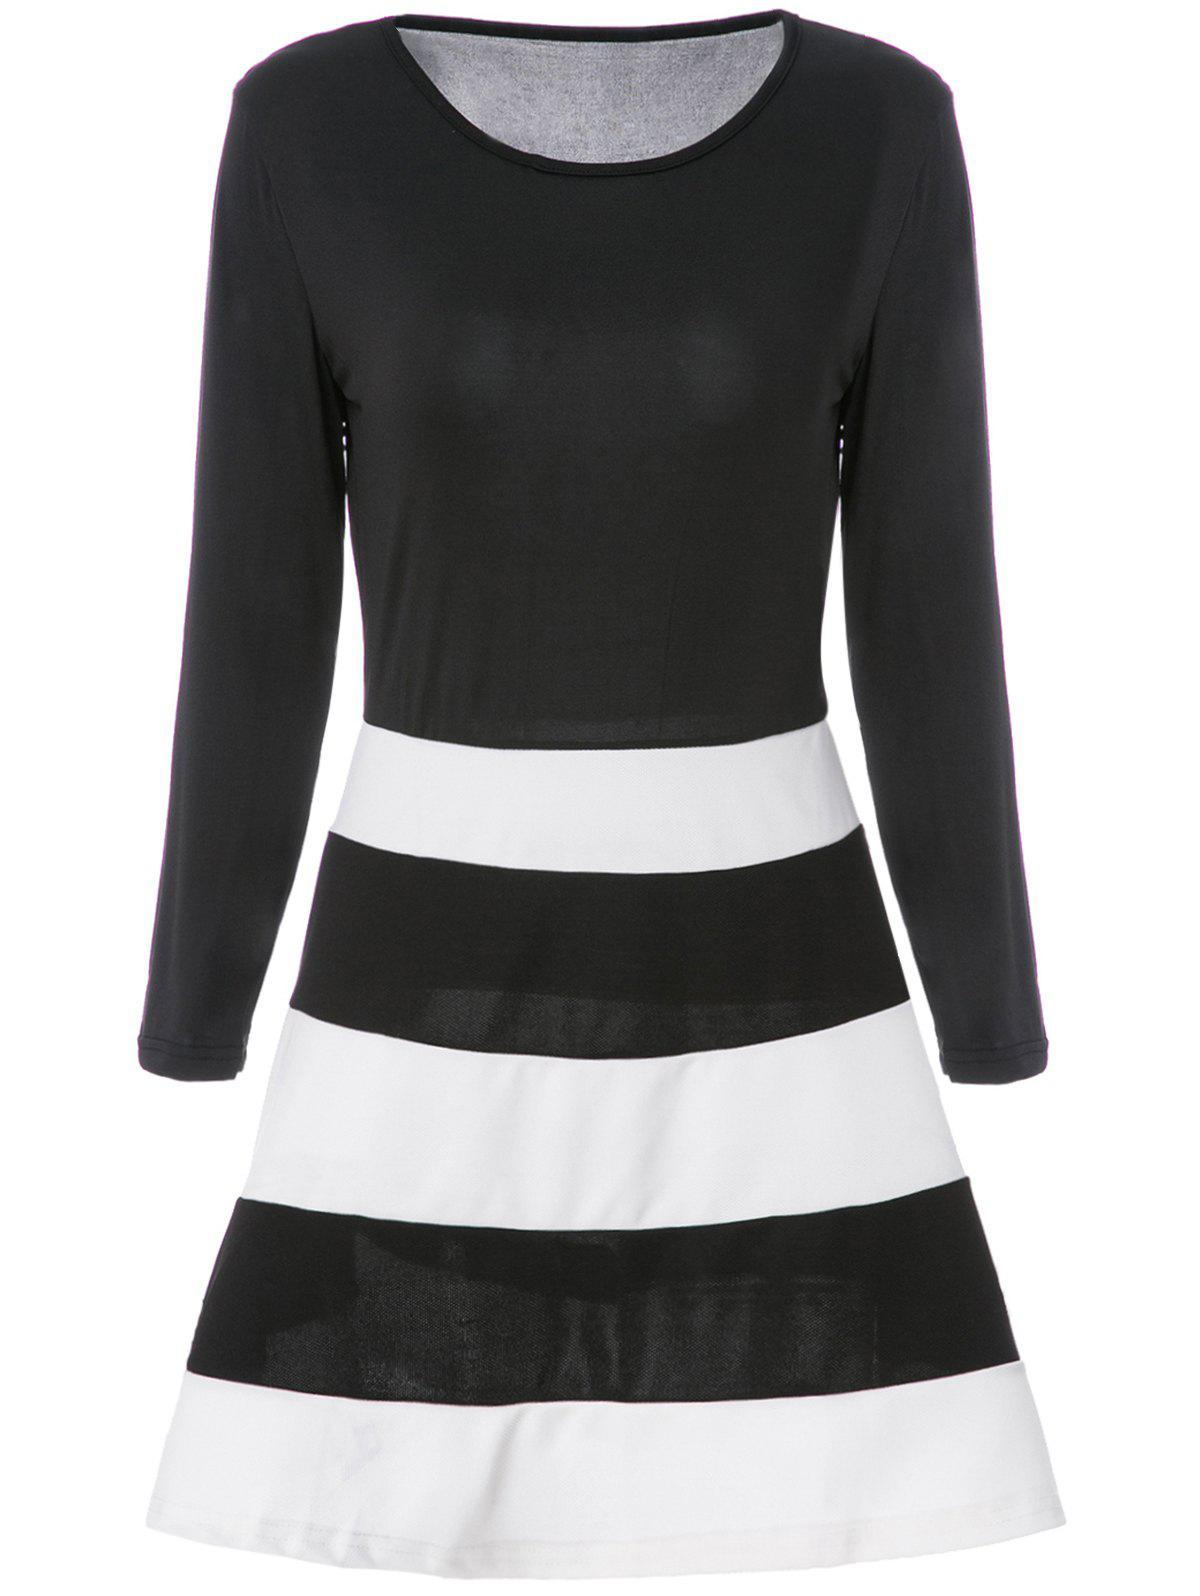 Simple Scoop Neck Long Sleeve Striped Color Block Women's Dress - WHITE/BLACK S